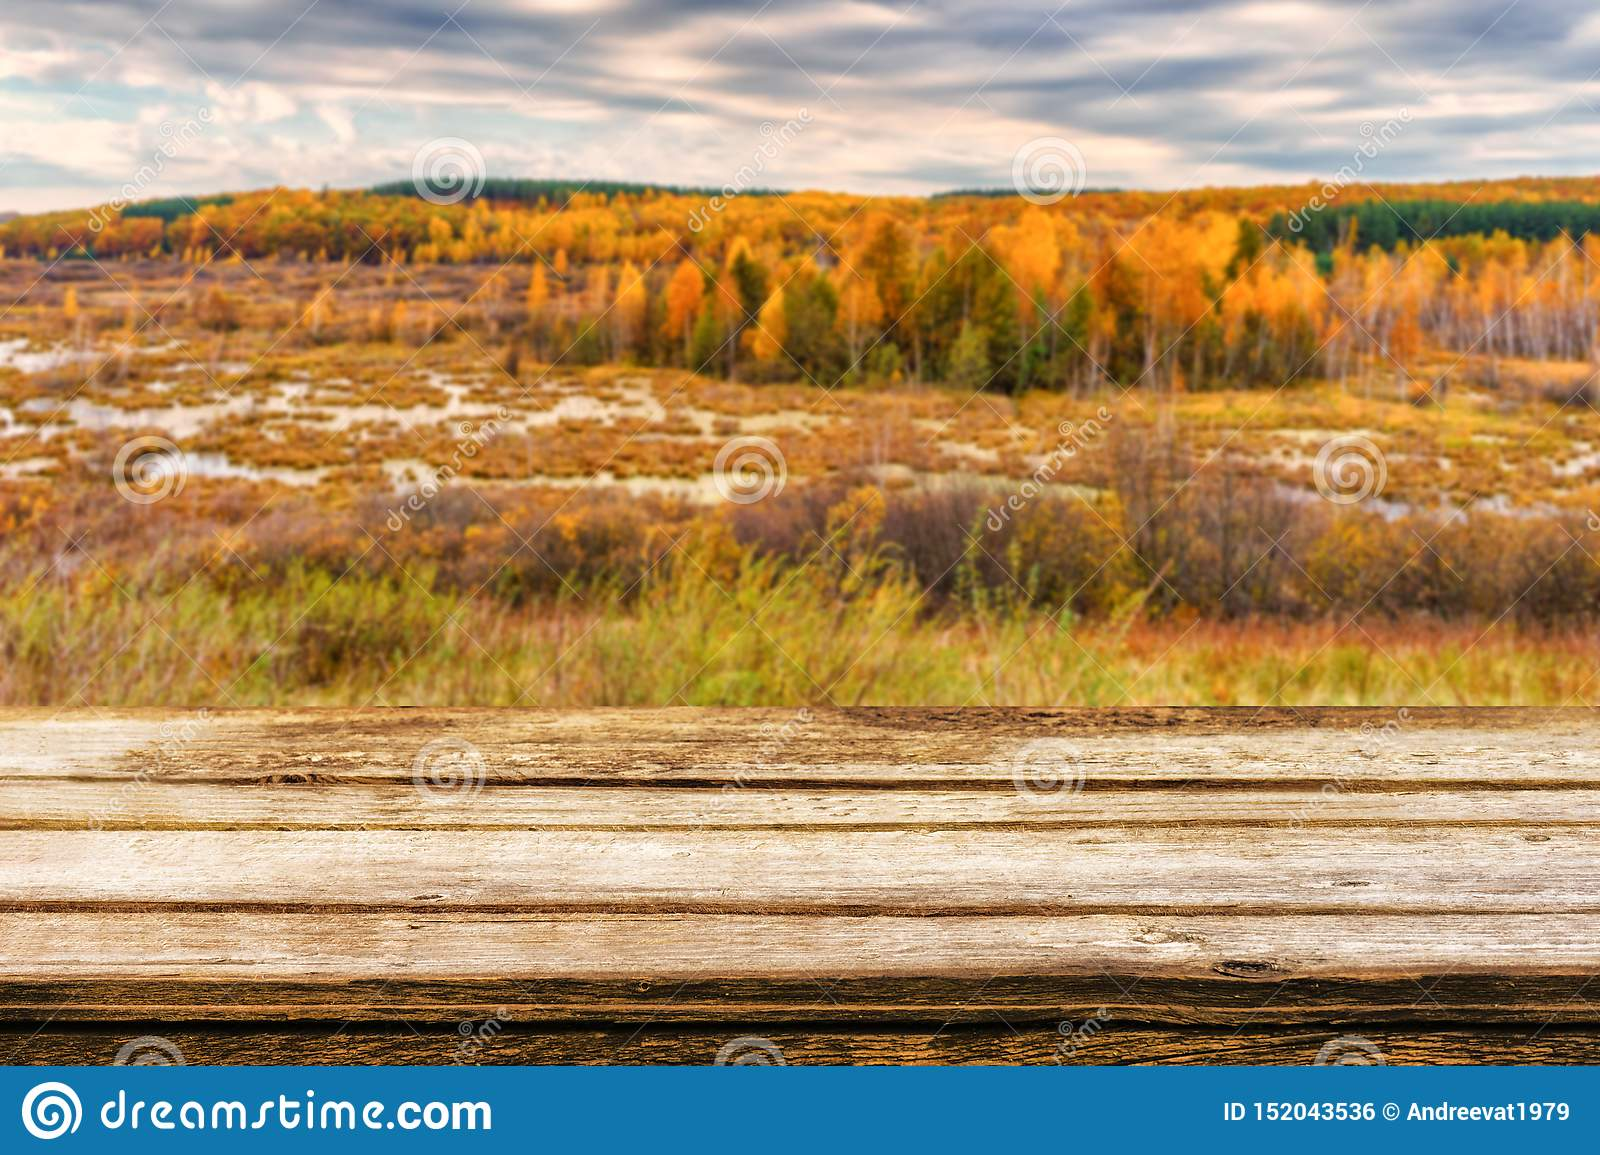 Empty wooden table with blurred picturesque autumn landscape of view from the hill to the lowland with forest and swamps. Mock up